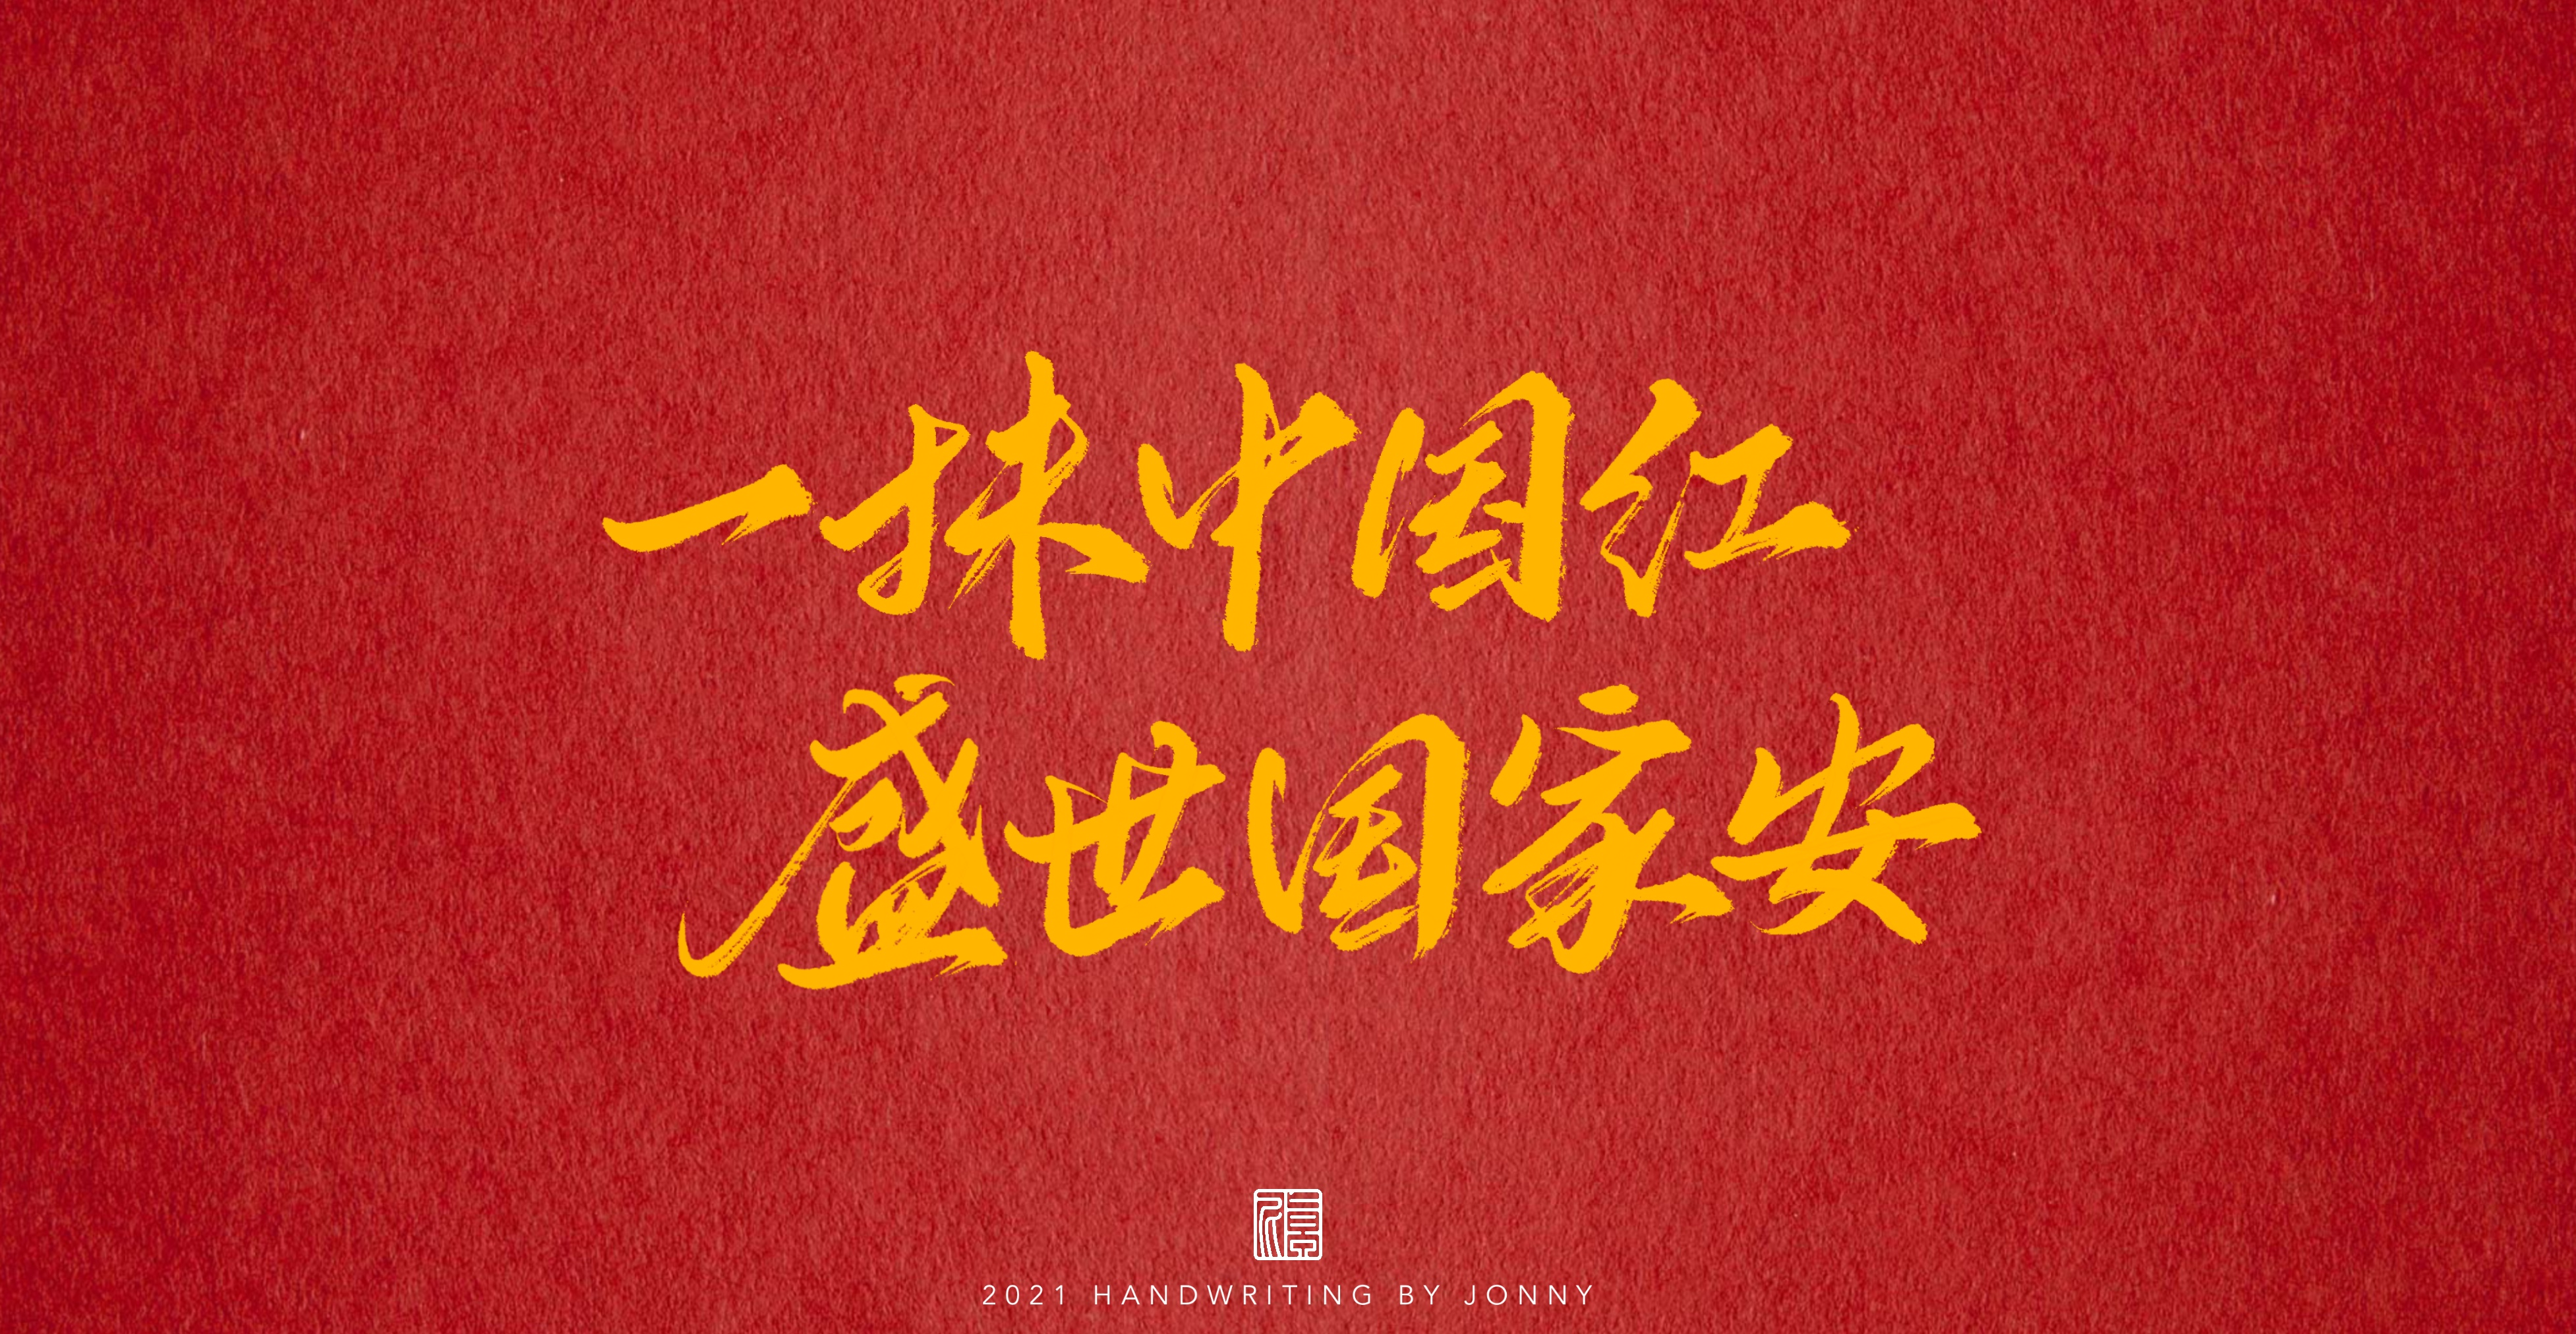 13P Collection of the latest Chinese font design schemes in 2021 #.664